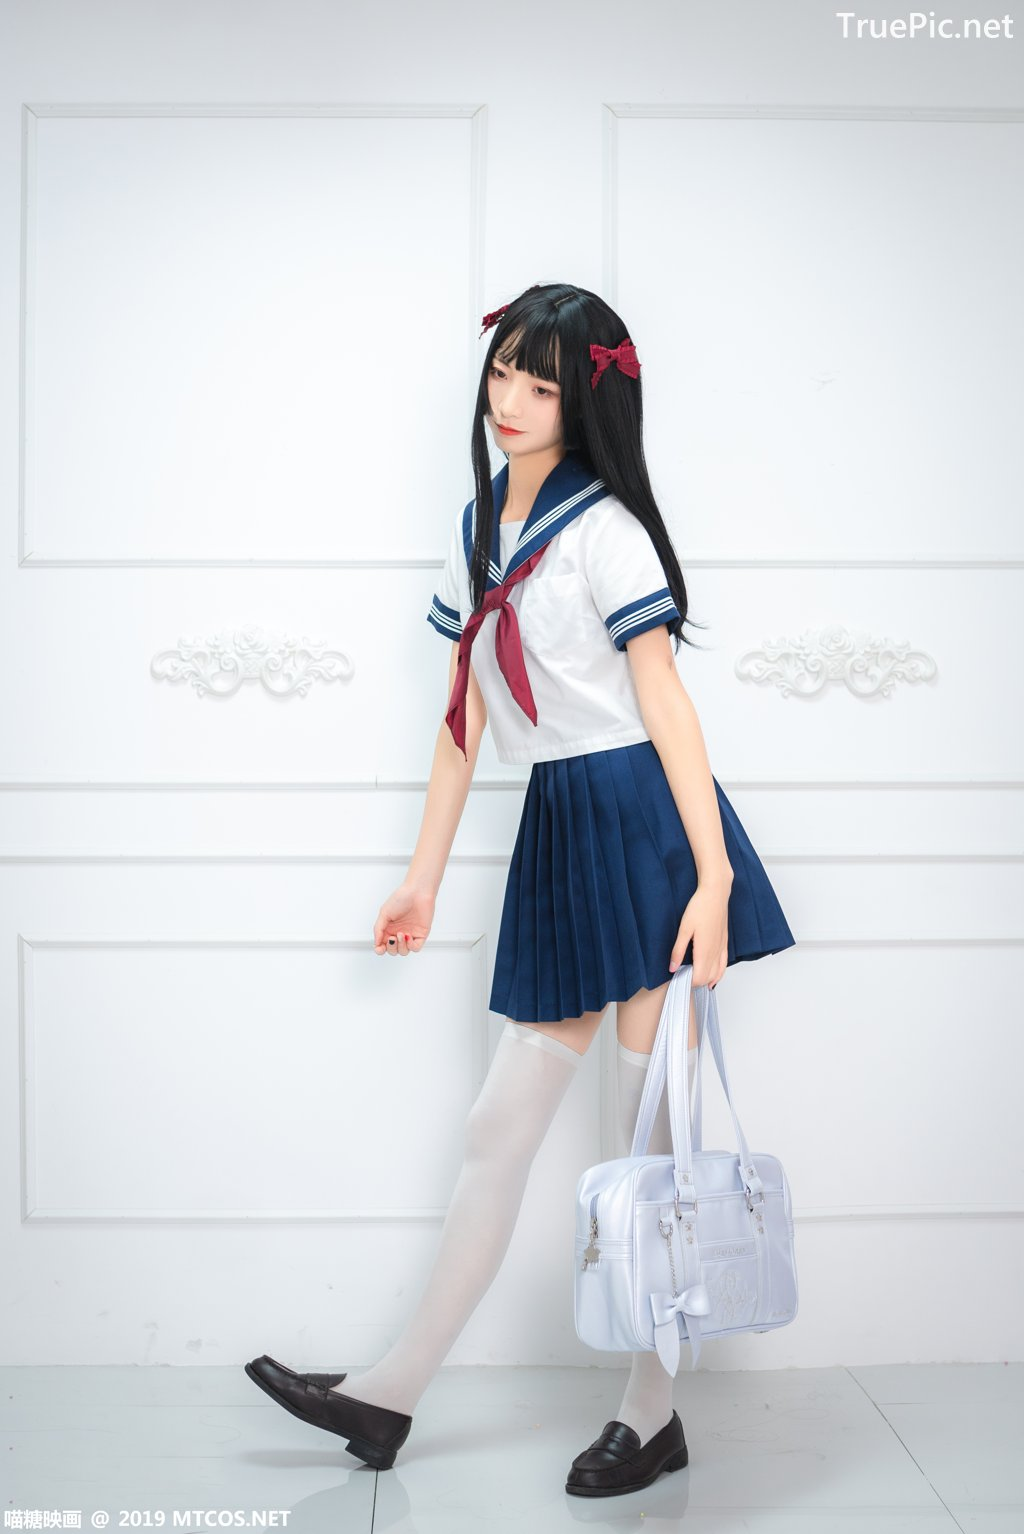 Image-MTCos-喵糖映画-Vol-012–Chinese-Pretty-Model-Cute-School-Girl-With-Sailor-Dress-TruePic.net- Picture-8